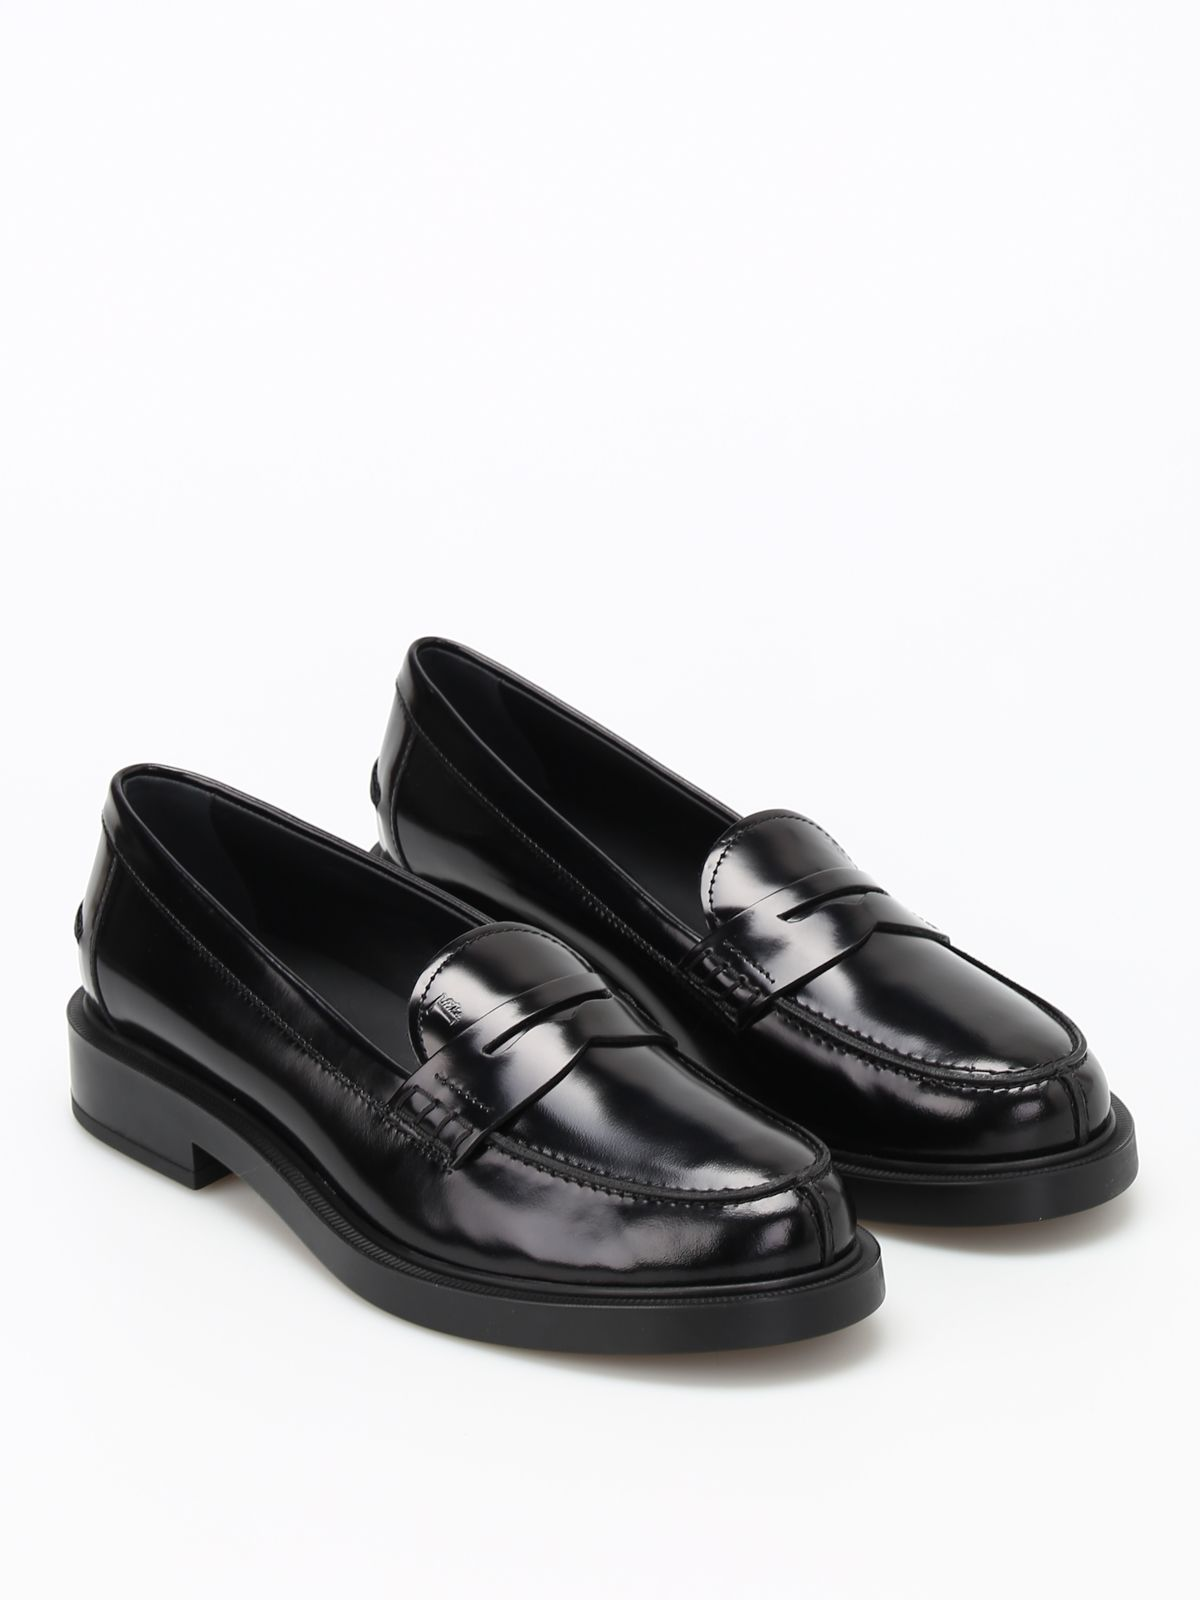 d9f669d28b1 TOD S PENNY BAR DETAILED LEATHER LOAFERS